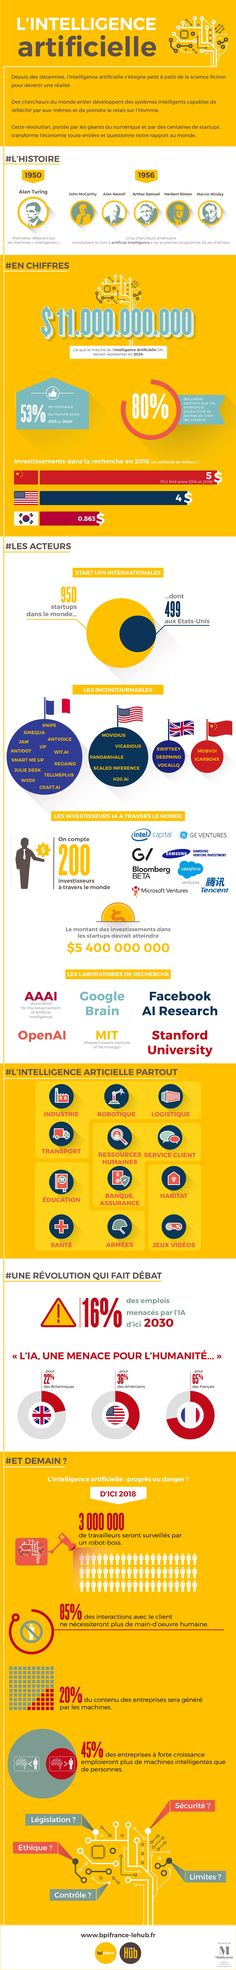 #Infographie : #IA Marché, business, grands comptes et champions nationaux, l'#intelligence #artificielle fait parler d'elle. Quels sont les enjeux du secteur, ses innovation et ses acteurs ?